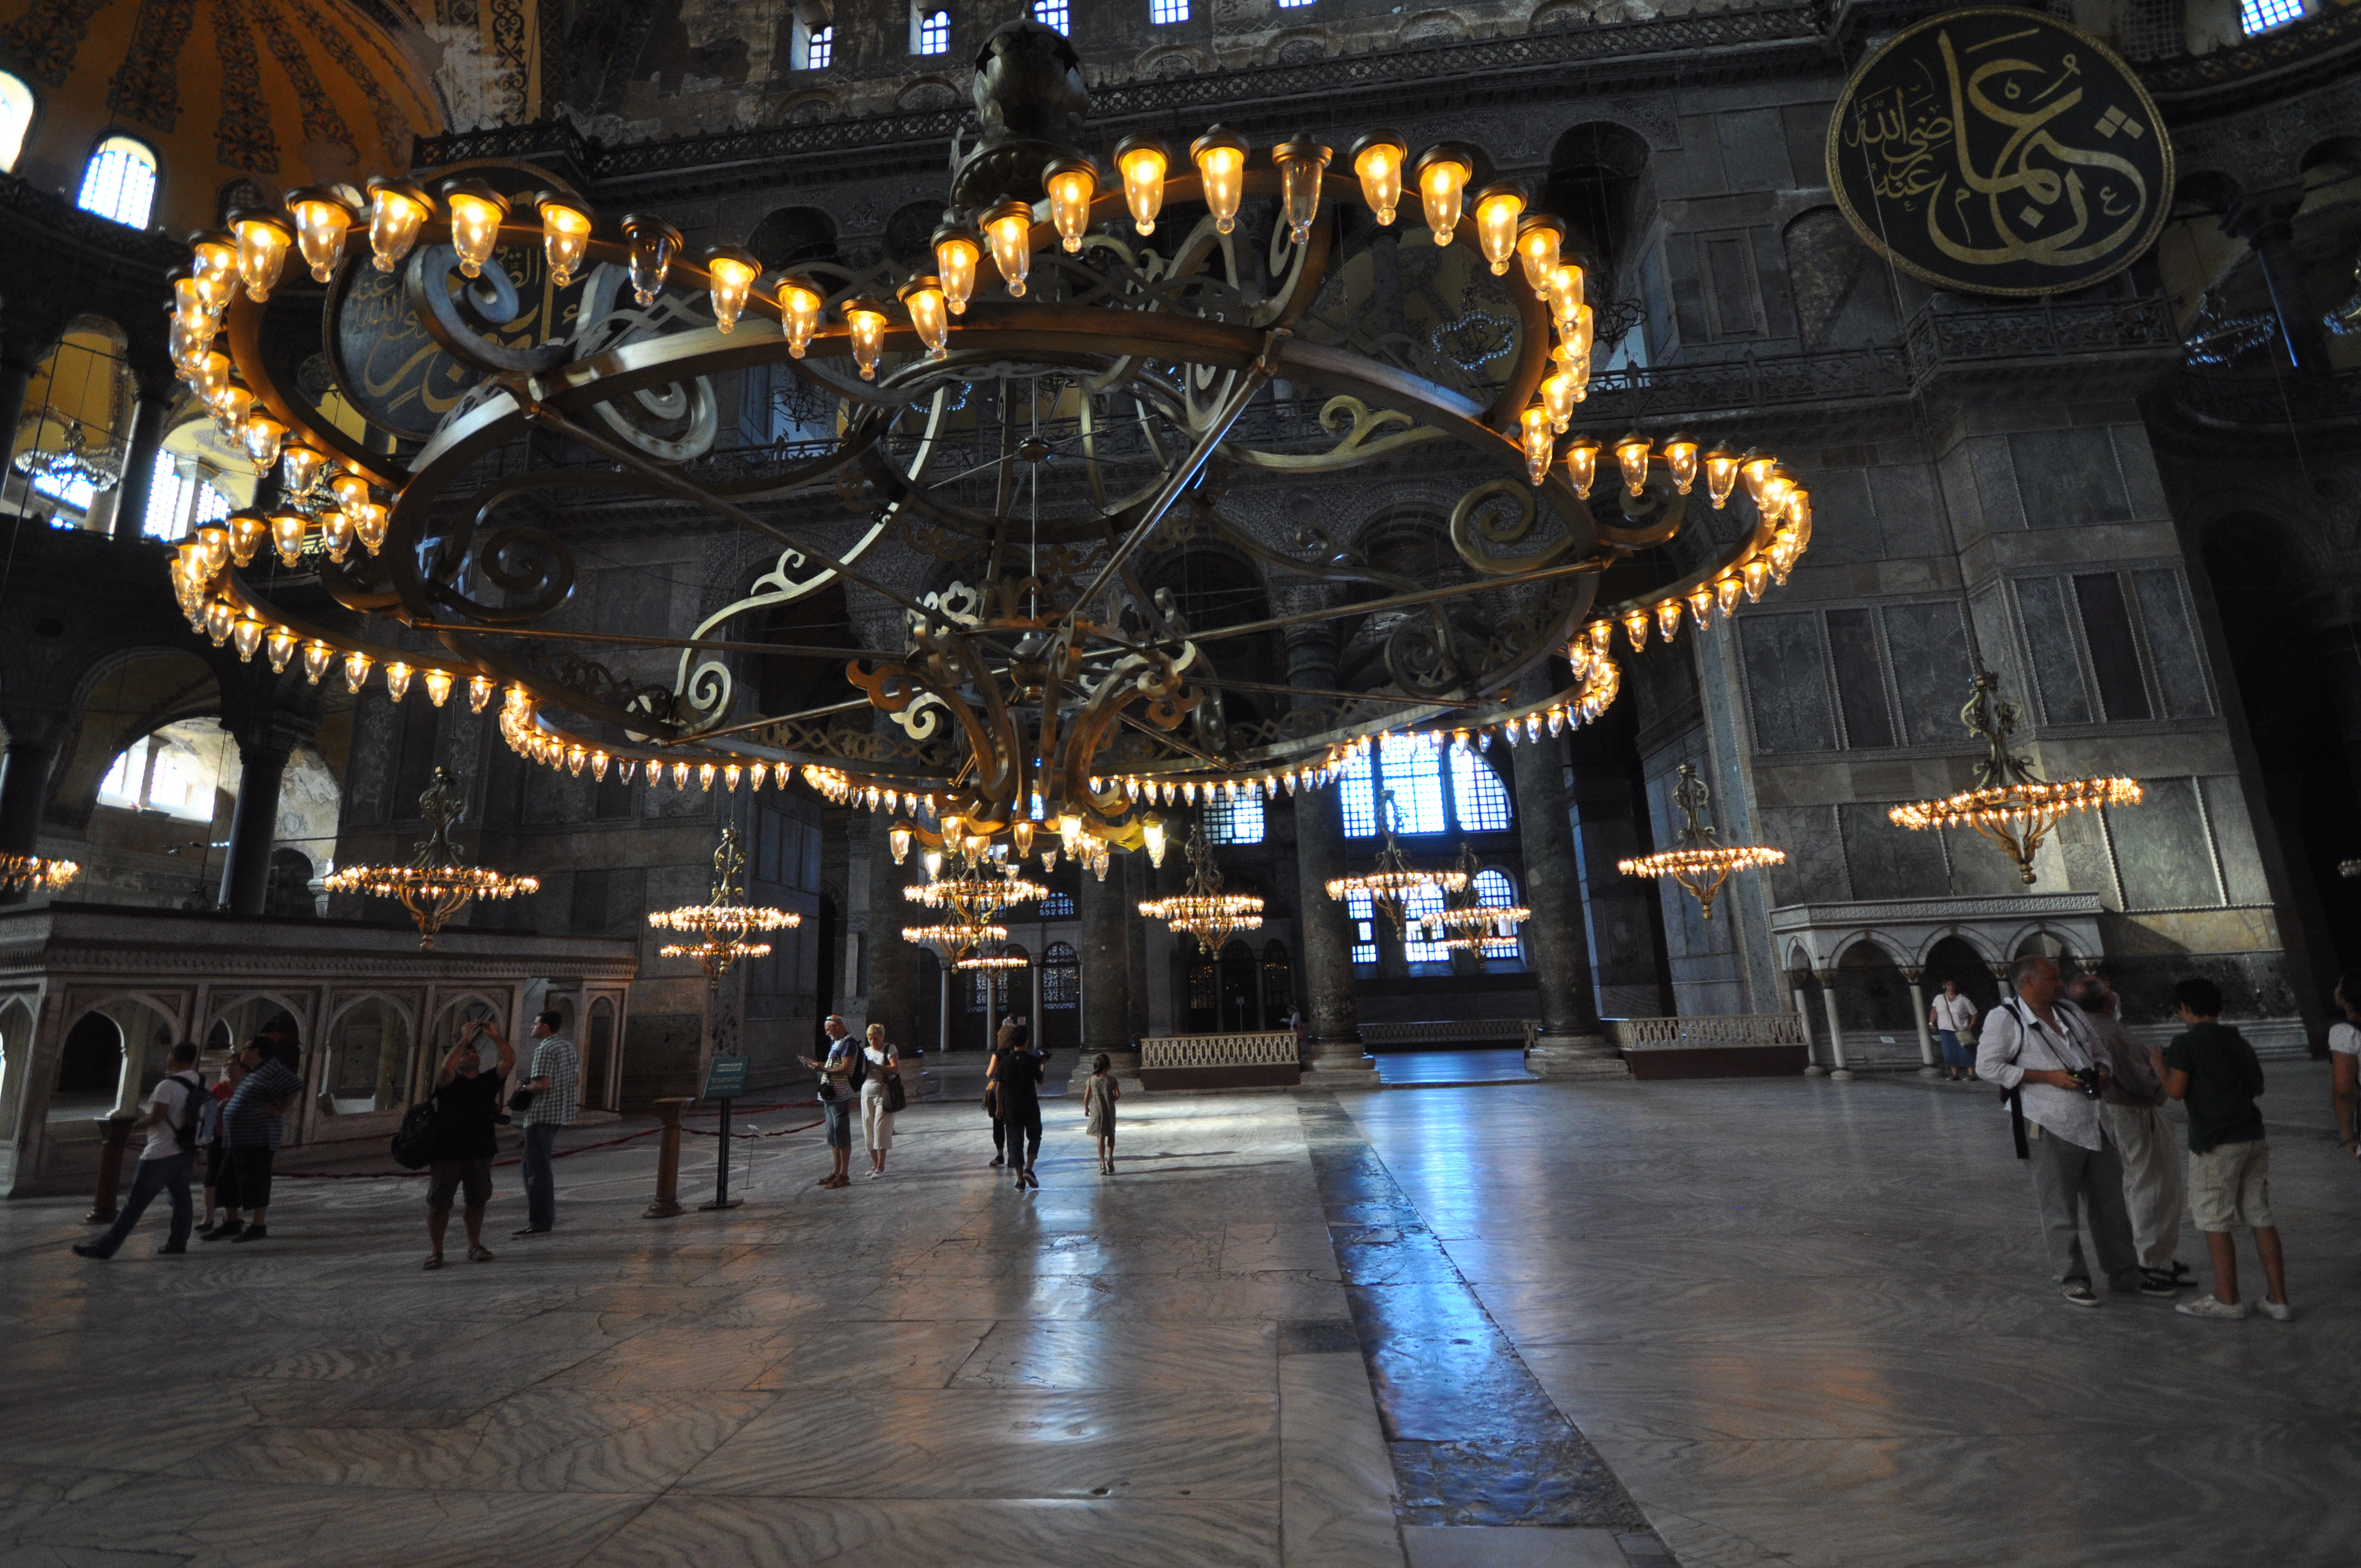 Filemassive central chandelier and two of the medallions hagia filemassive central chandelier and two of the medallions hagia sophia 8394693292 aloadofball Images